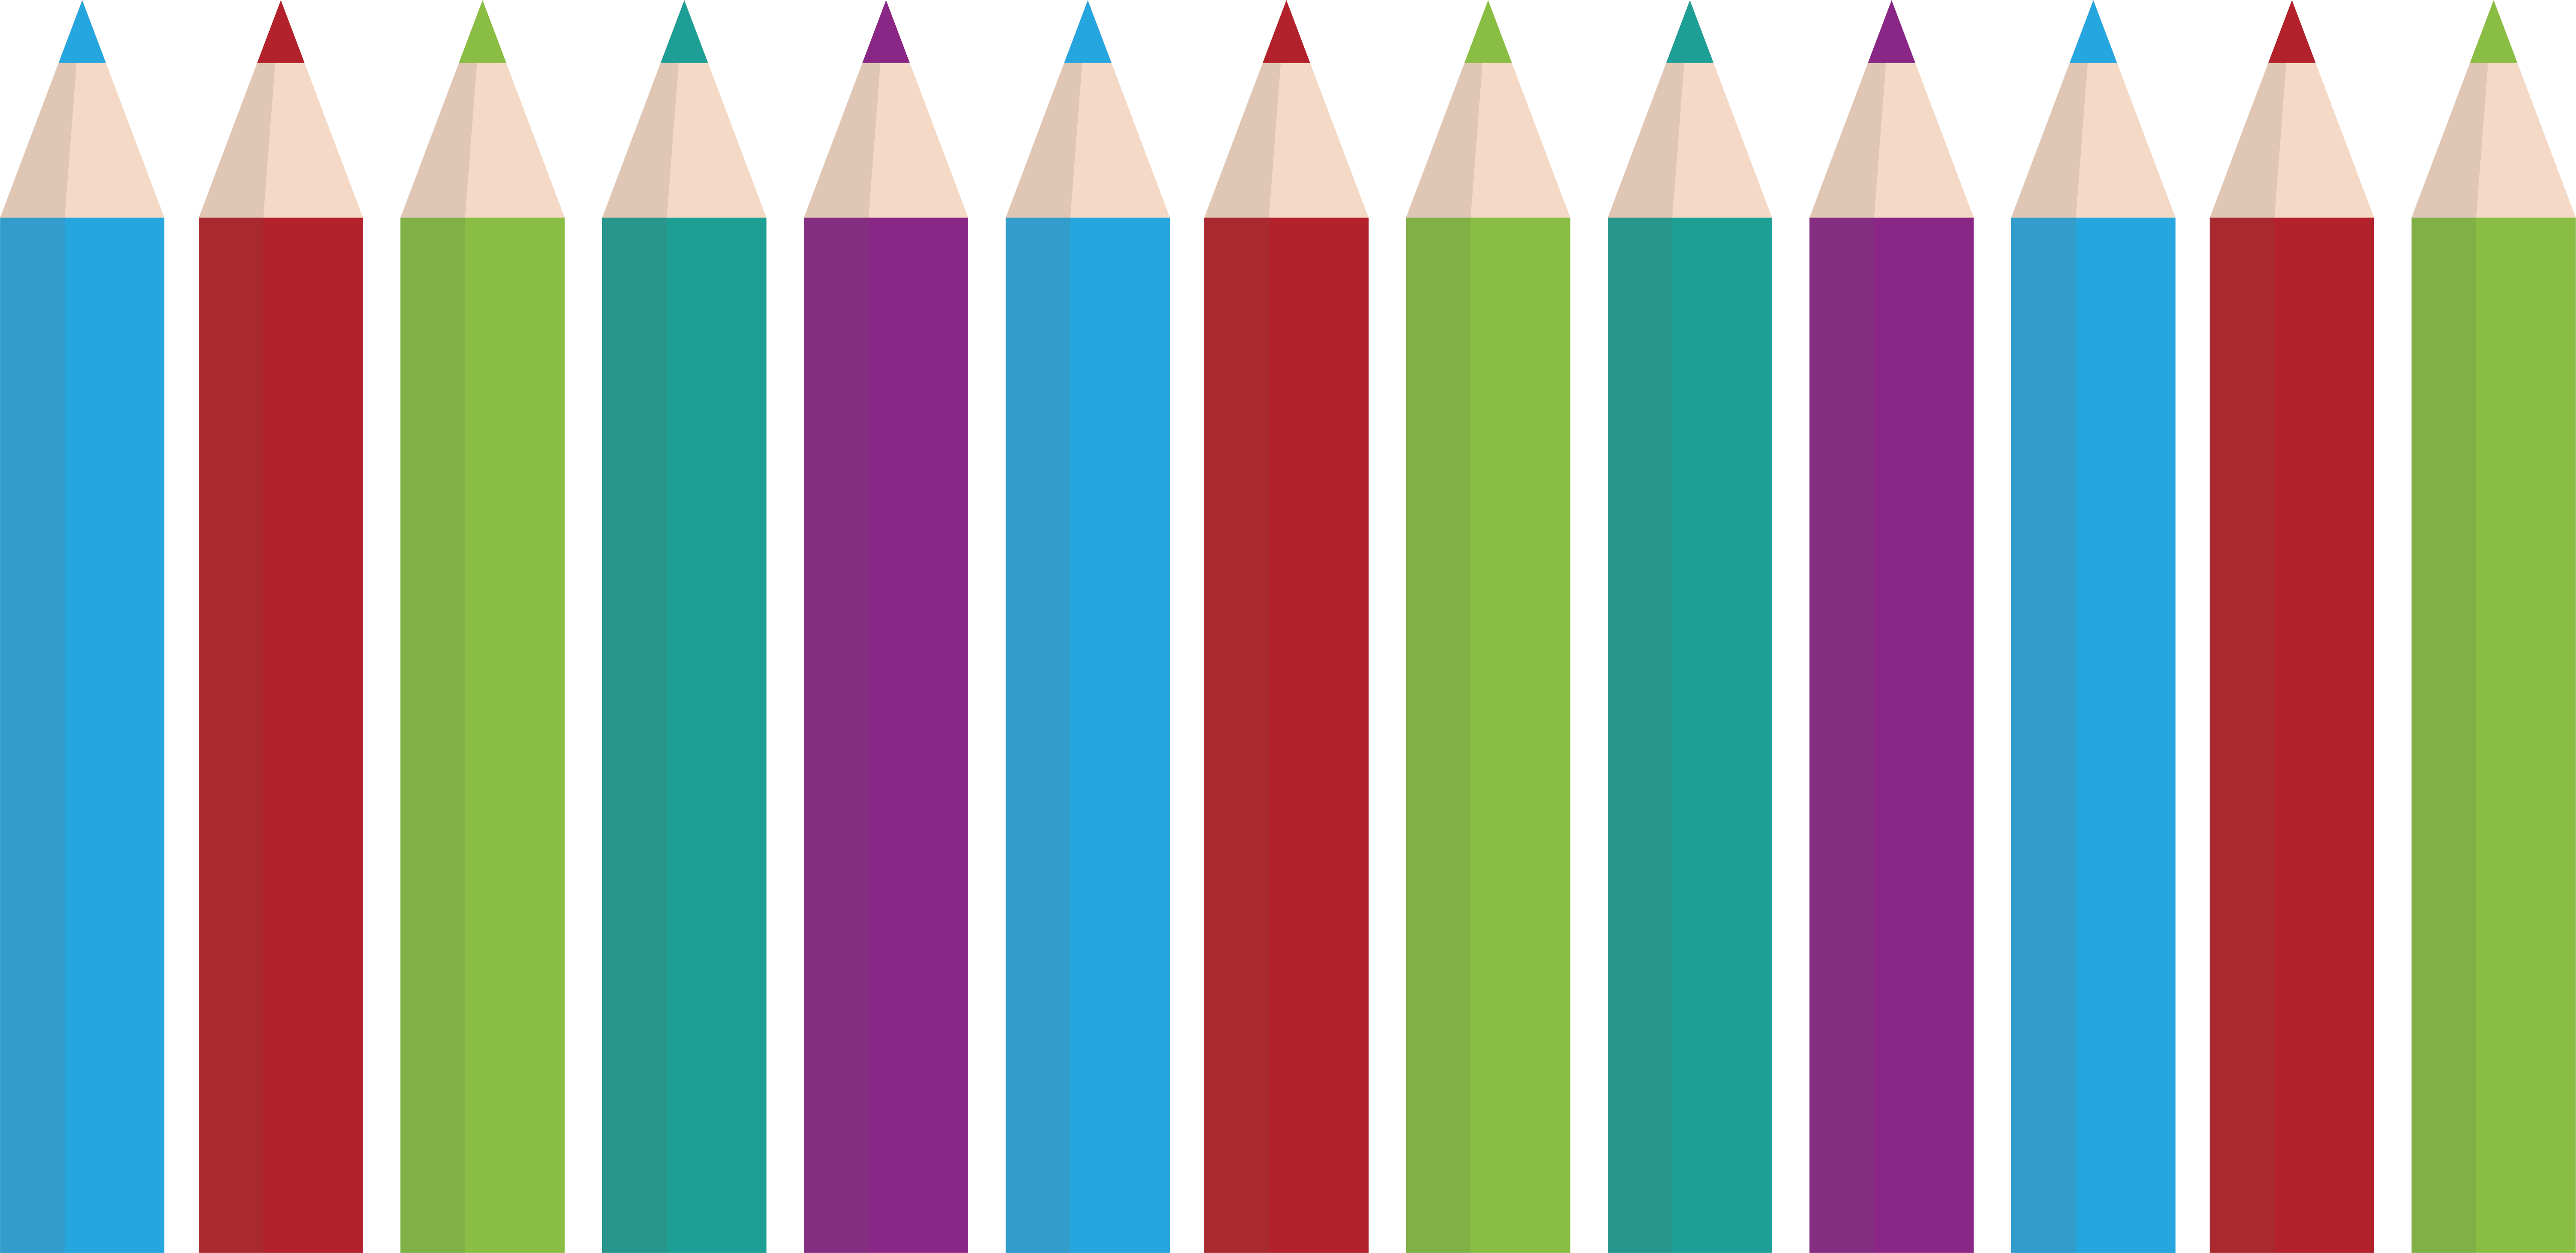 Crayons clipart color chart. Crayon colored pencil bar